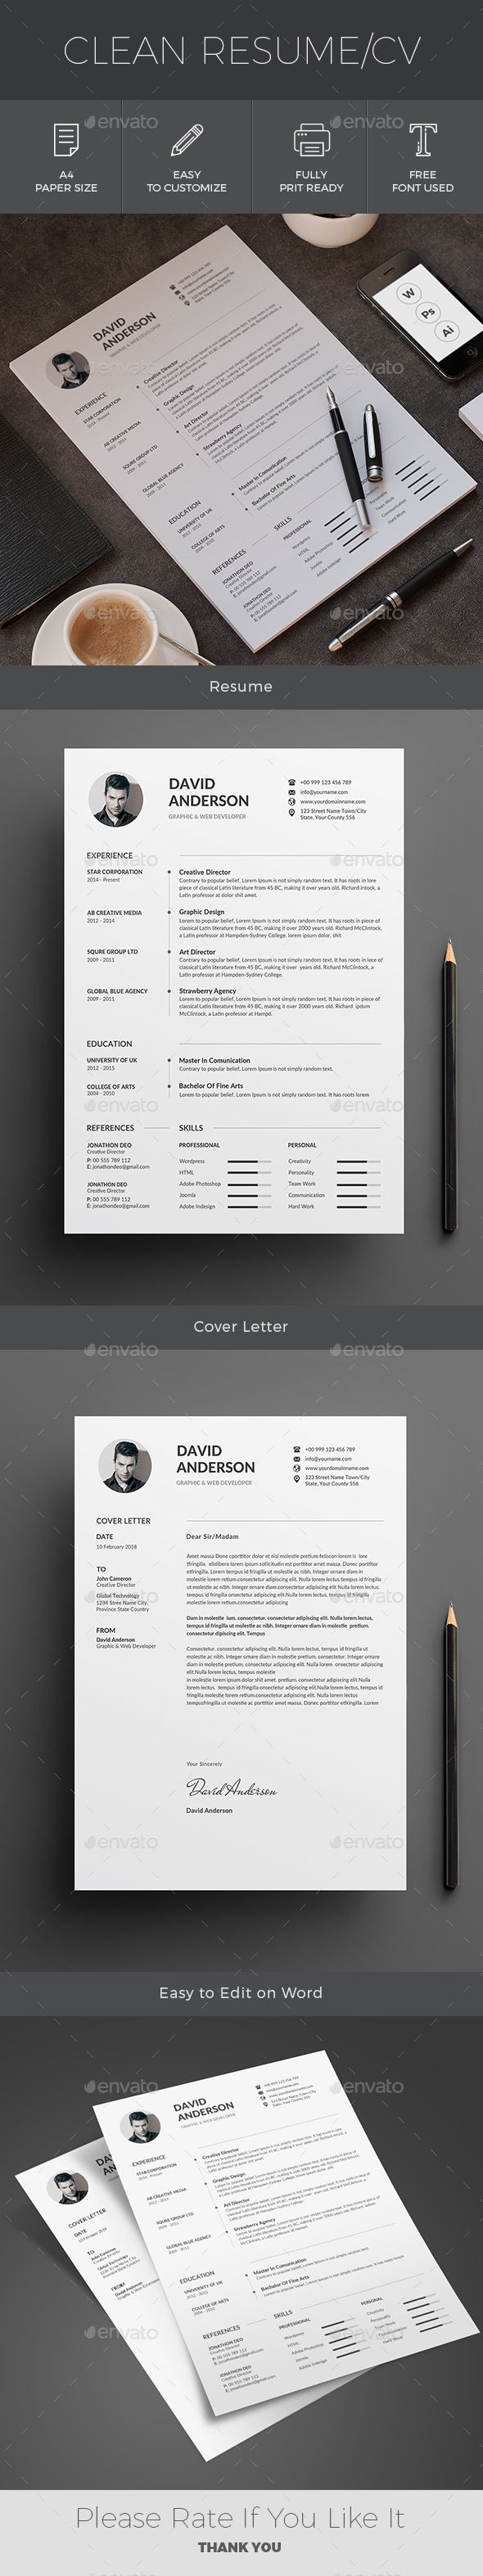 720 best Resume images on Pinterest | Cv template, Page layout and ...